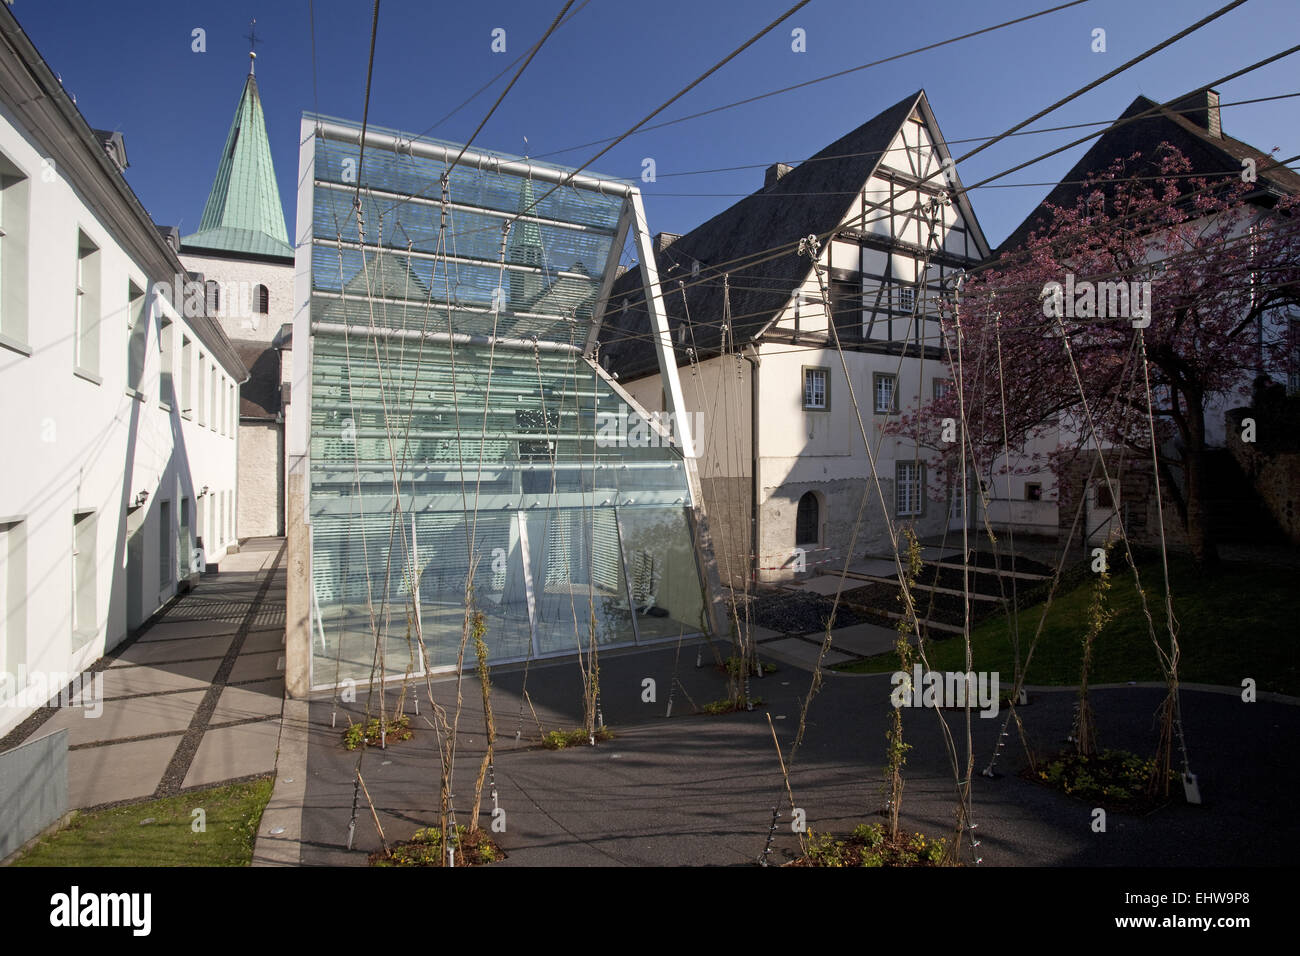 The convent Wedinghausen in Arnsberg. - Stock Image